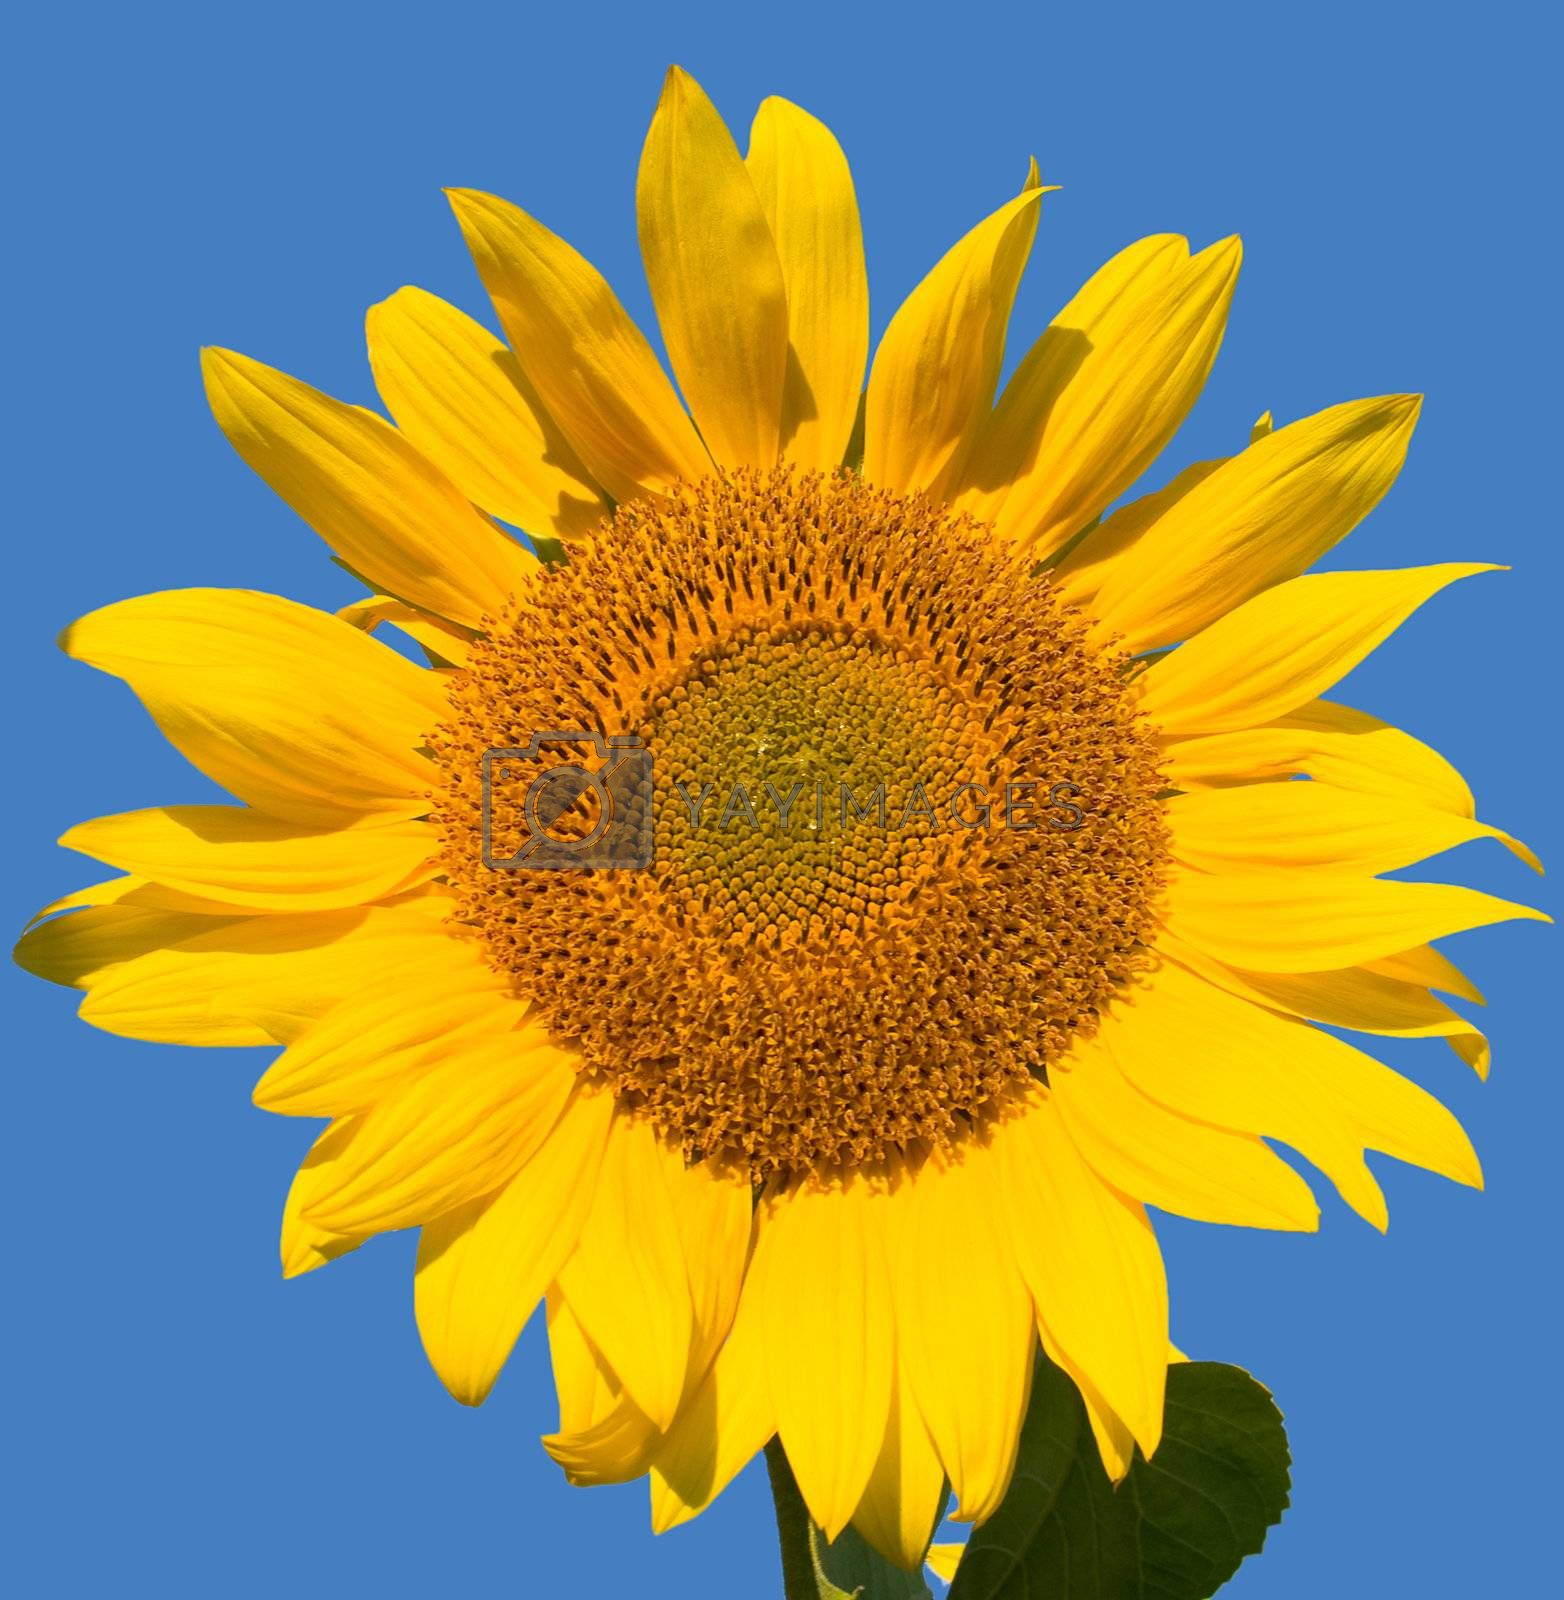 ripe sunflower on a blue background